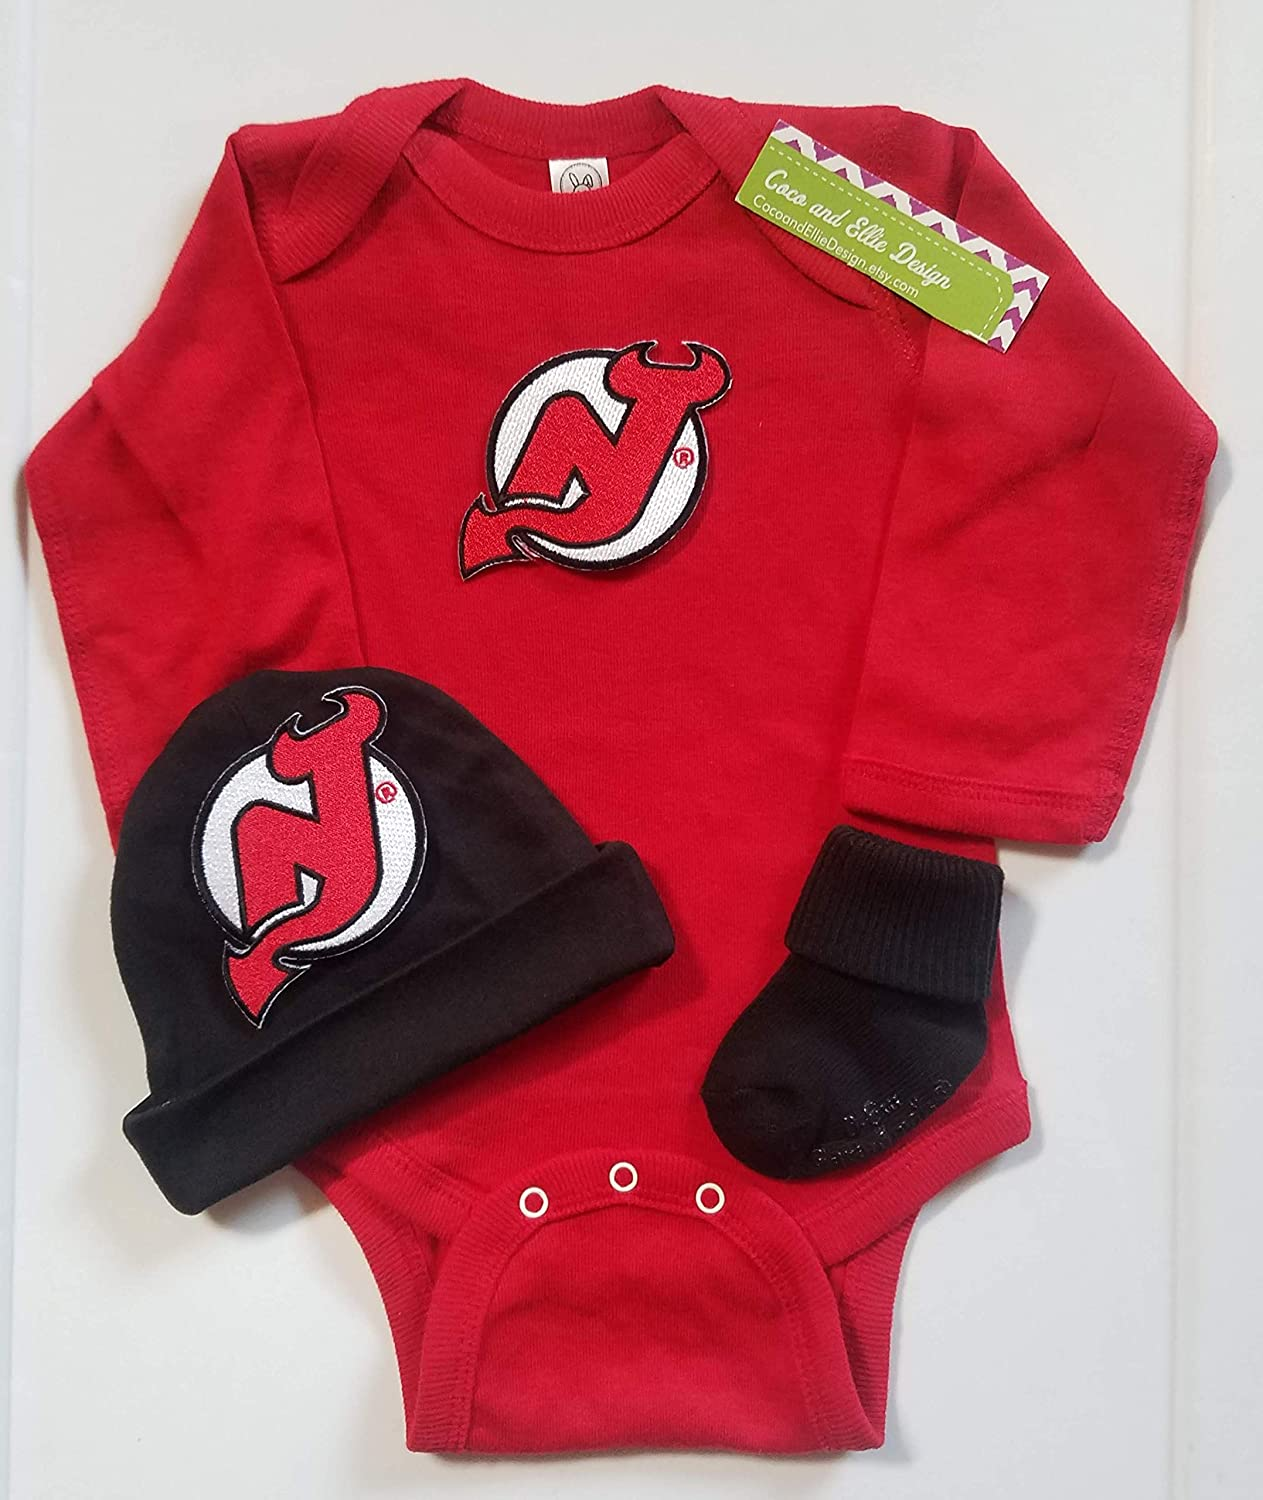 buy online 49990 b7977 Amazon.com: New Jersey Devil baby outfit/Devils baby clothes ...